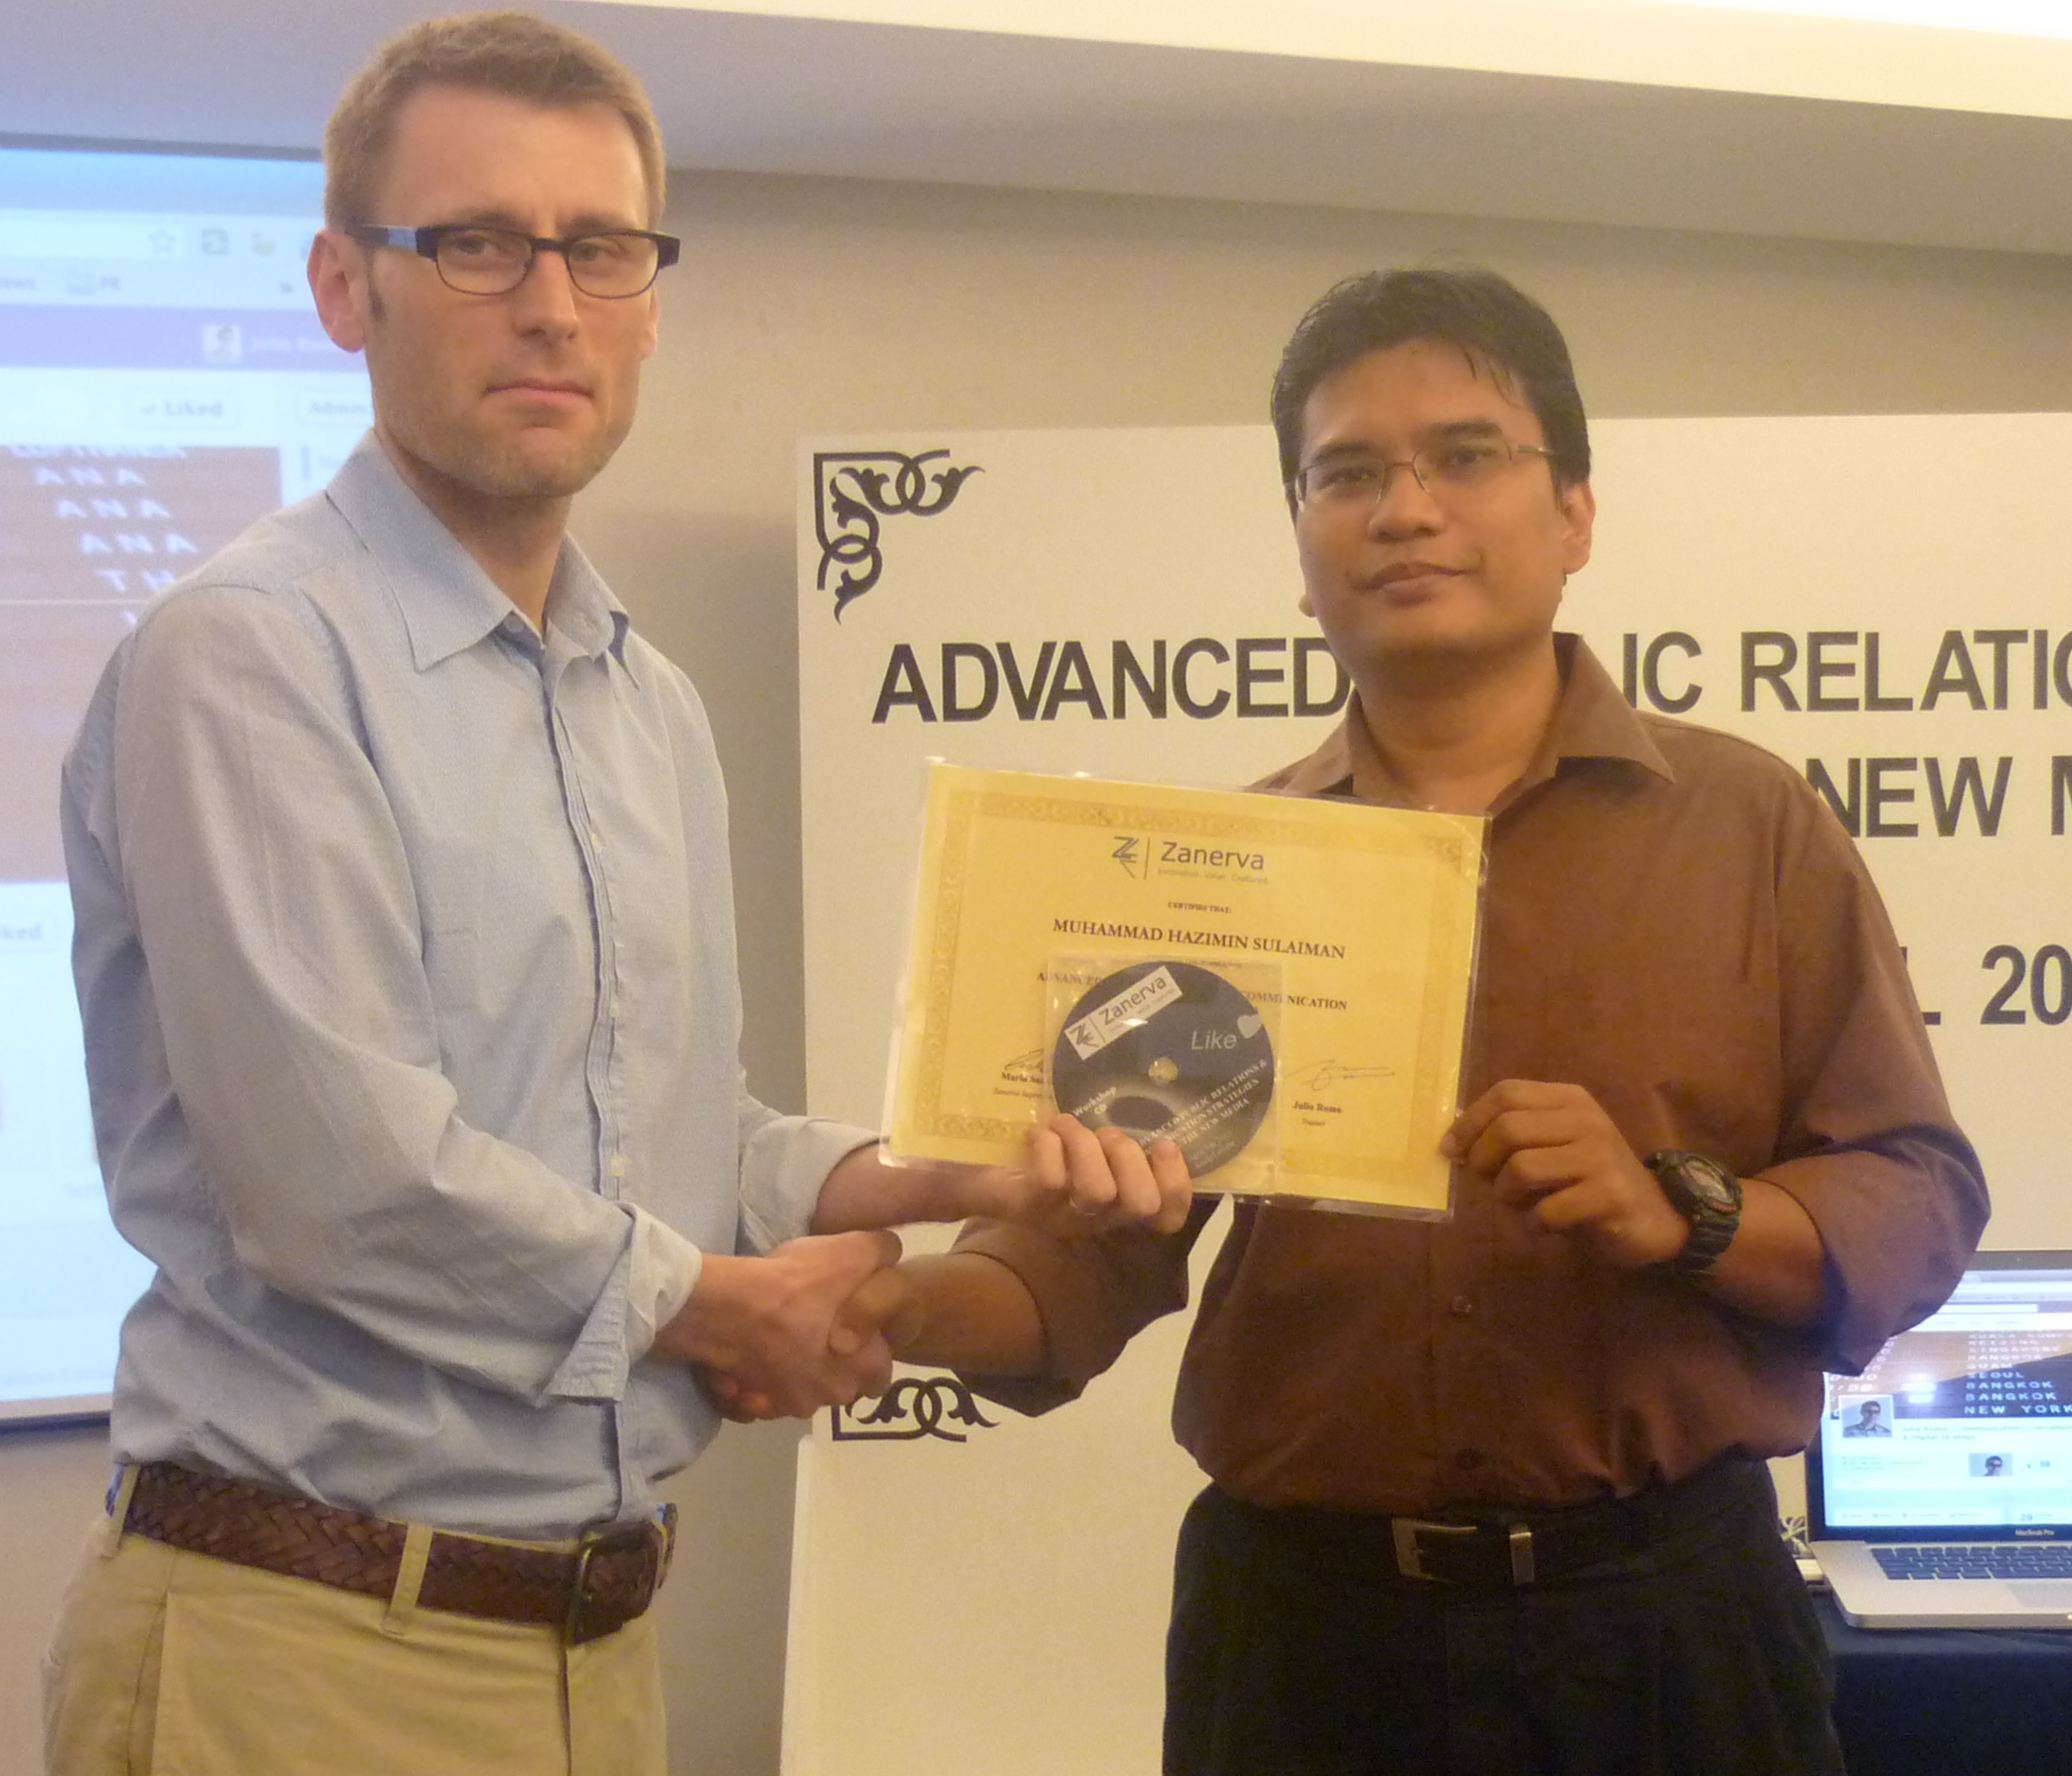 Muhammad Hazimin Sulaiman, Deputy Manager of Corp Comm. at Suruhanjaya Penangkutan Awam Darat (SPAD)  receiving his certificate of workshop participation from Julio Romo (Zanerva Partner Consultant) for attending the Advanced Public Relations & Communication Strategies Using the New Media in Kuala Lumpur